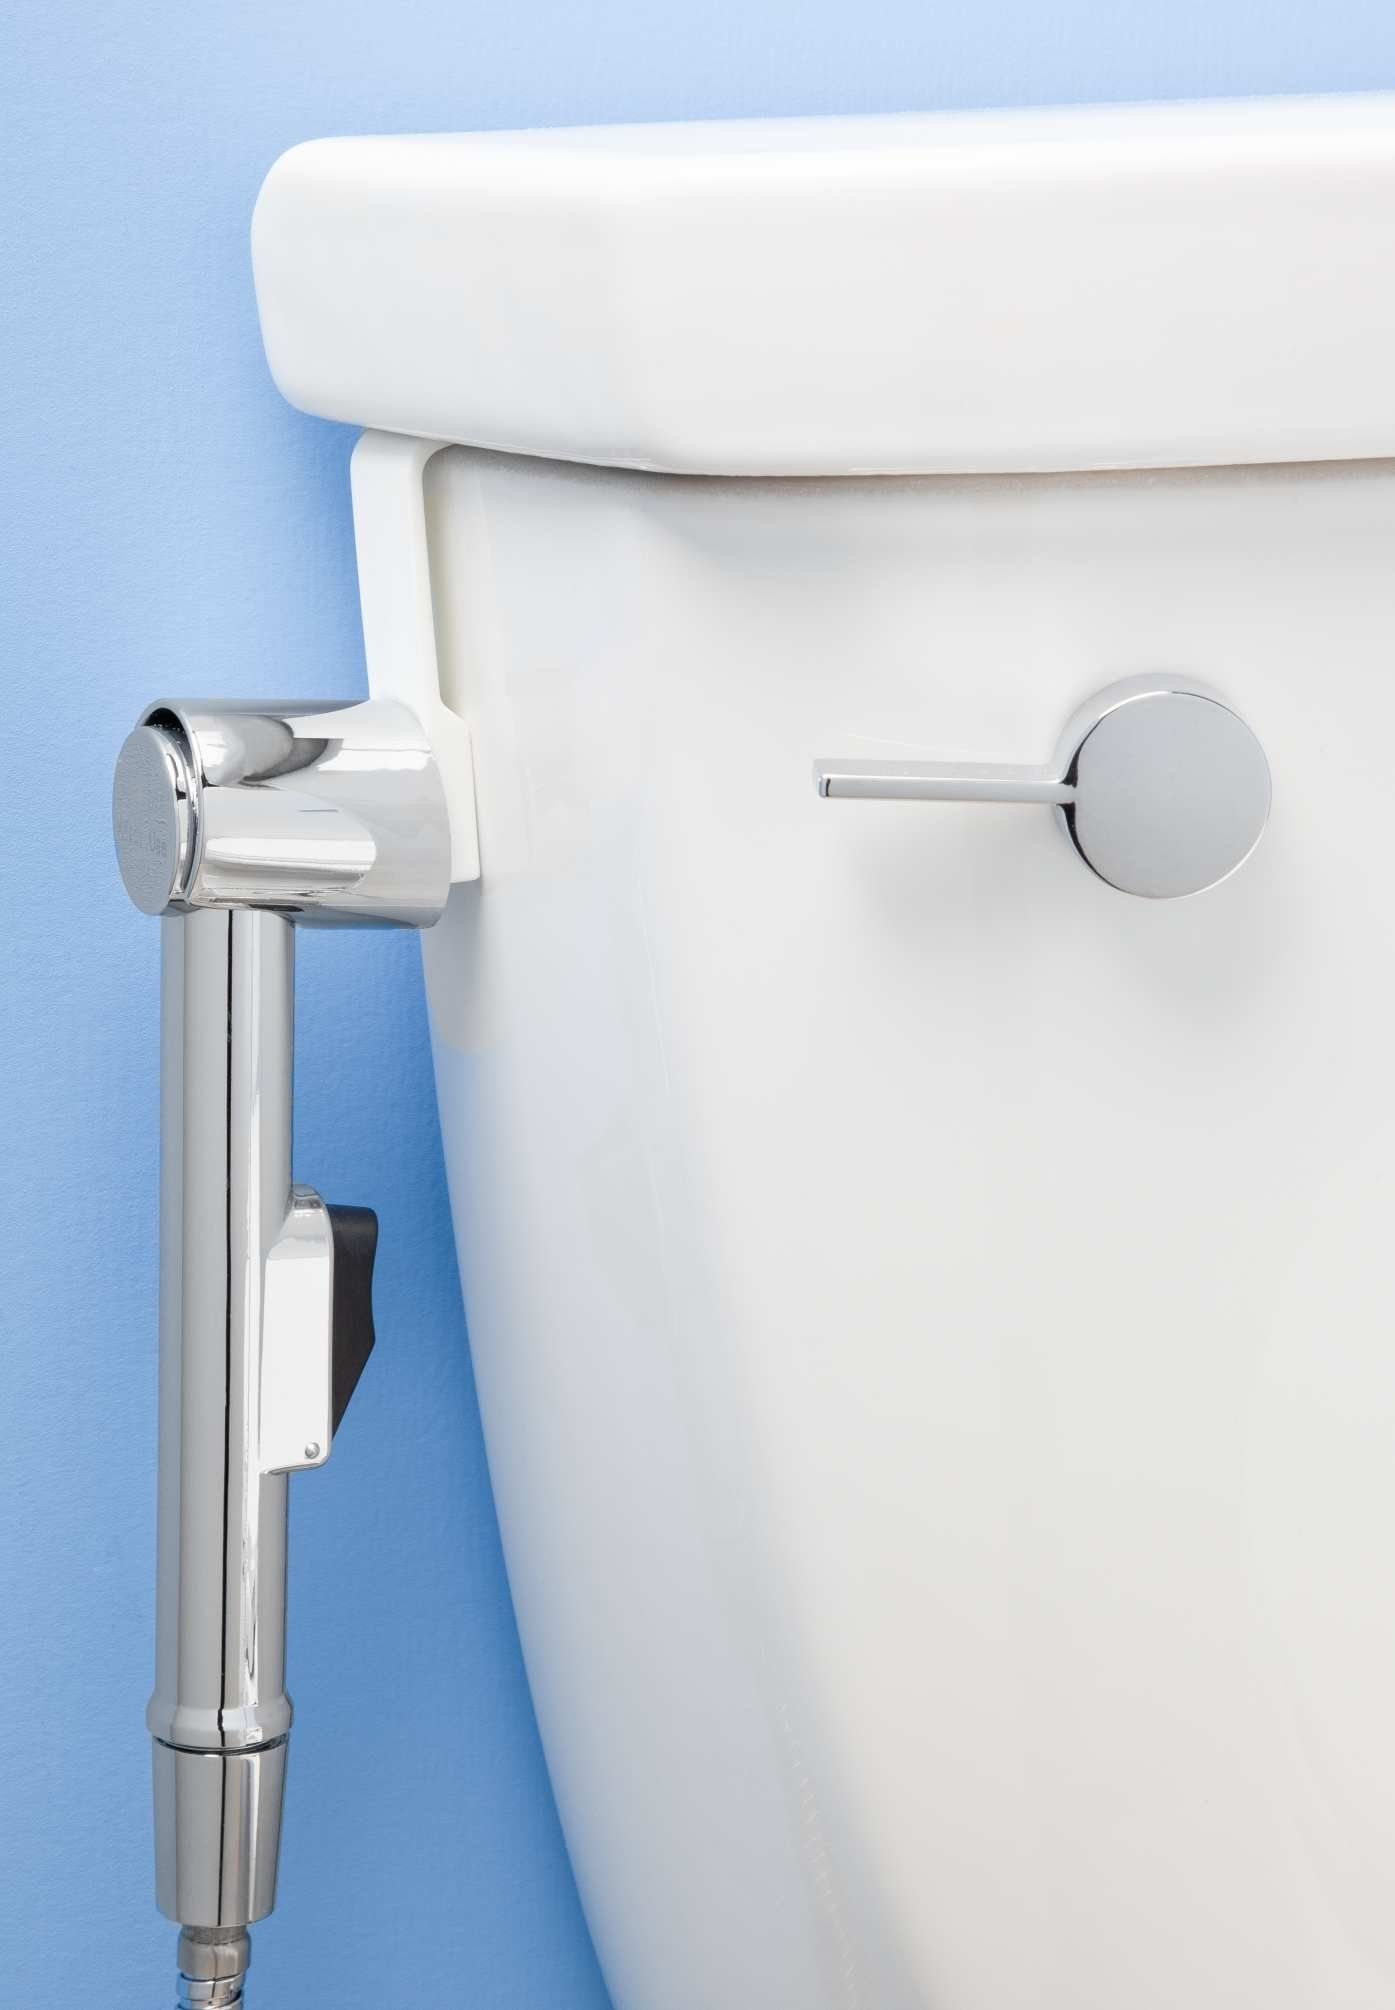 Aquaus Handheld / Hand Held Bidet for Toilet - Made in the USA - NSF ...